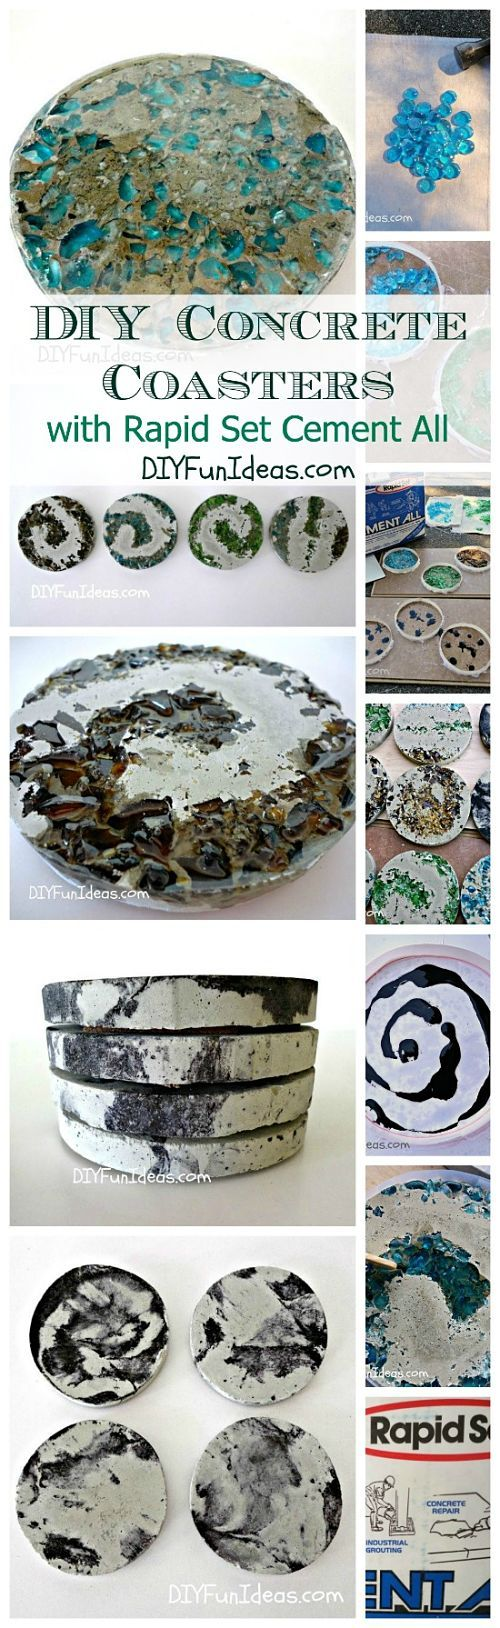 how to make crushed glass tie dyed concrete coasters with rapid set cement all dys. Black Bedroom Furniture Sets. Home Design Ideas